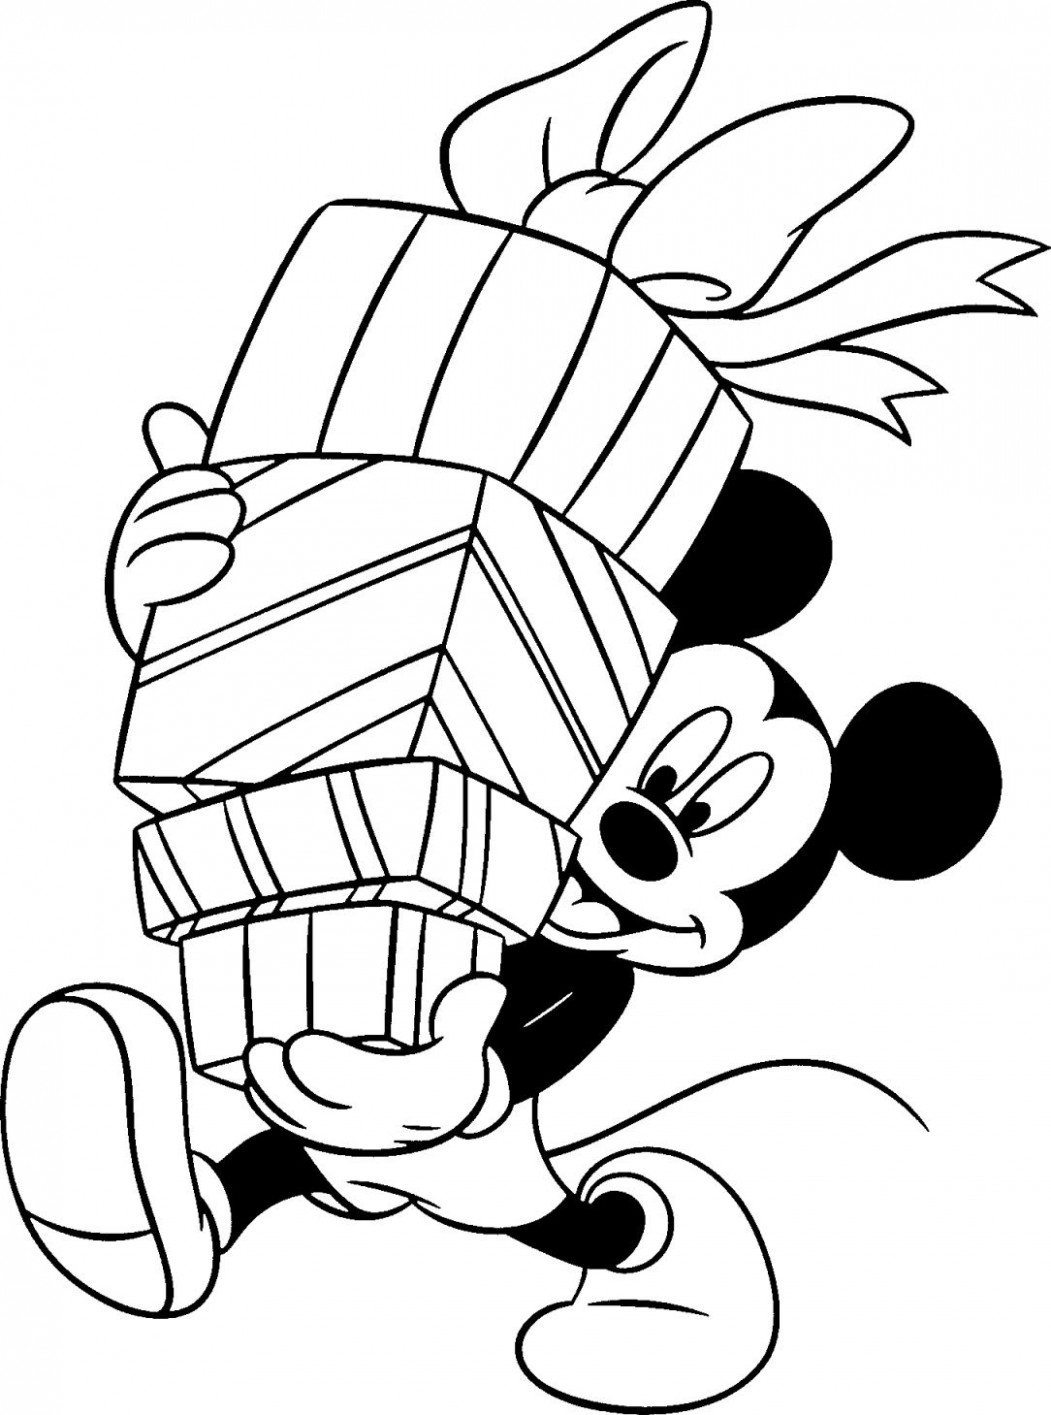 Disney Christmas Coloring Pages | christmas painting | Mickey mouse ..